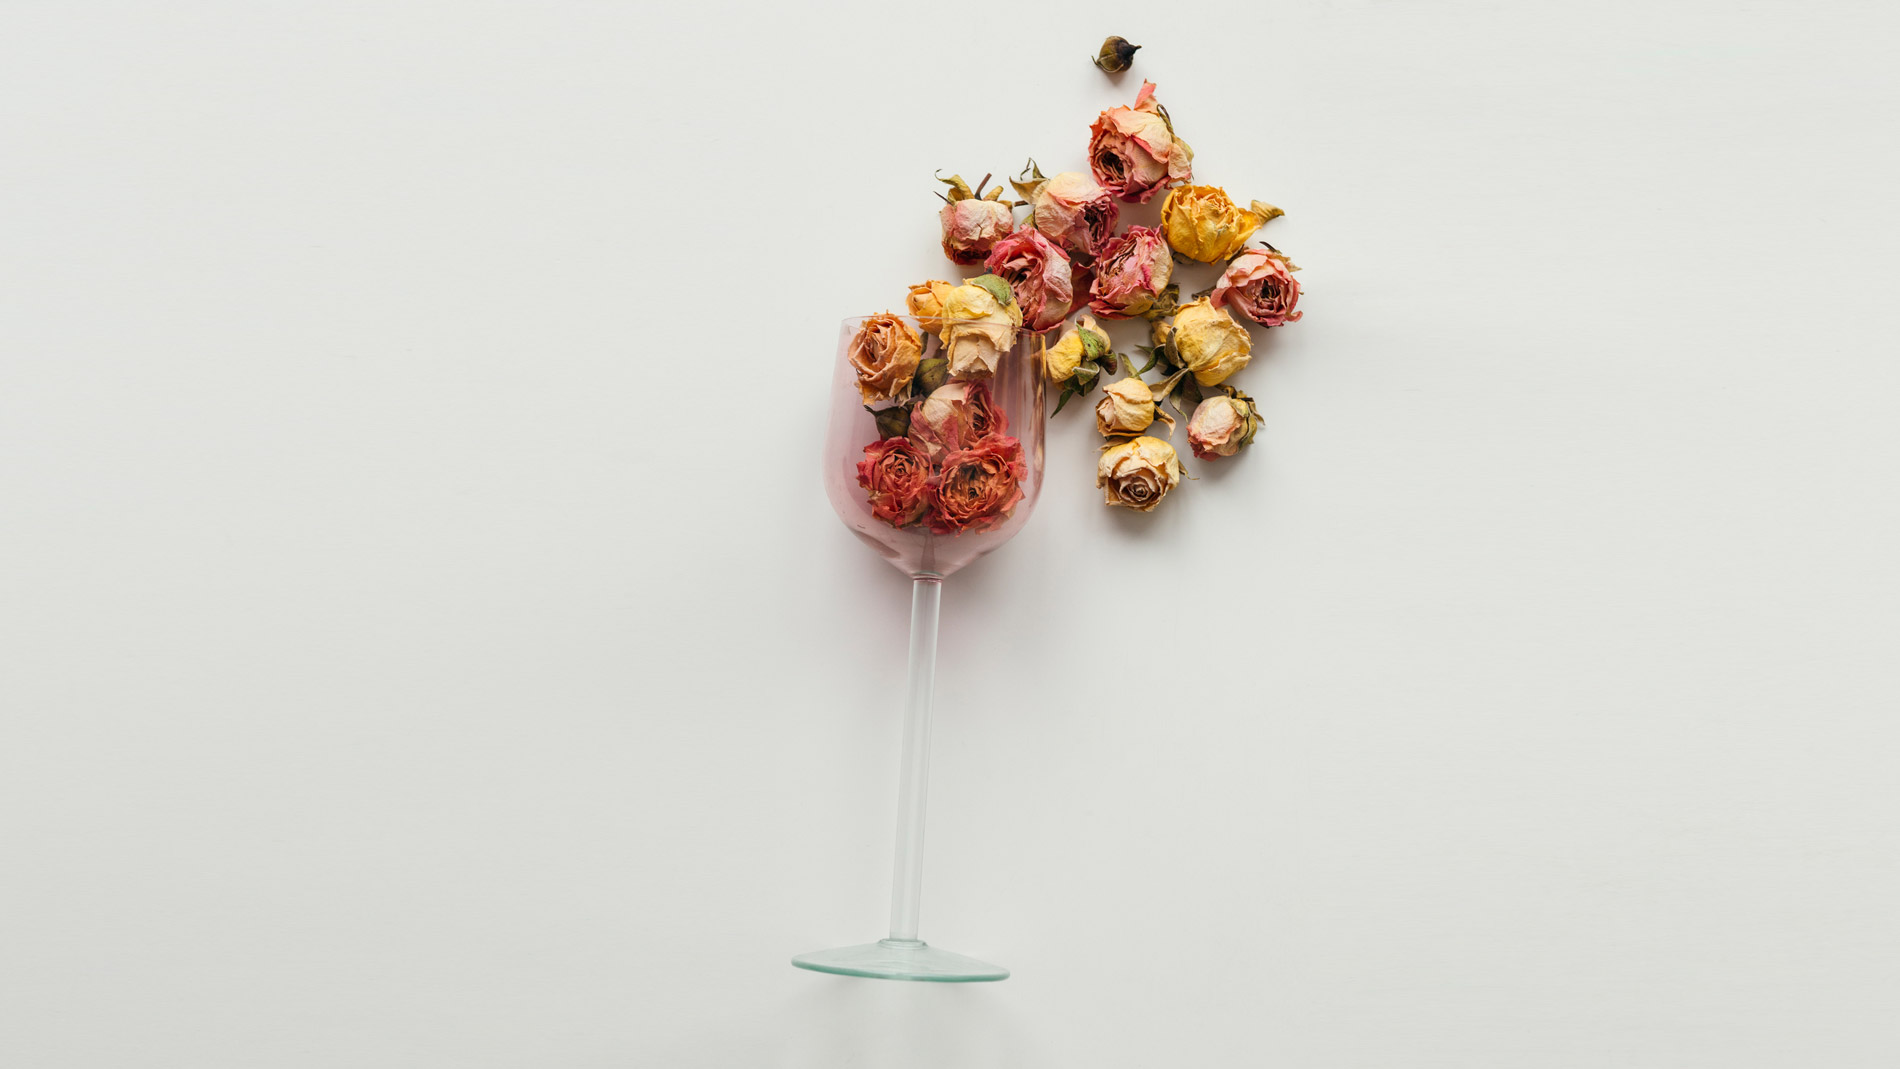 Are Some Wines More Romantic Than Others?